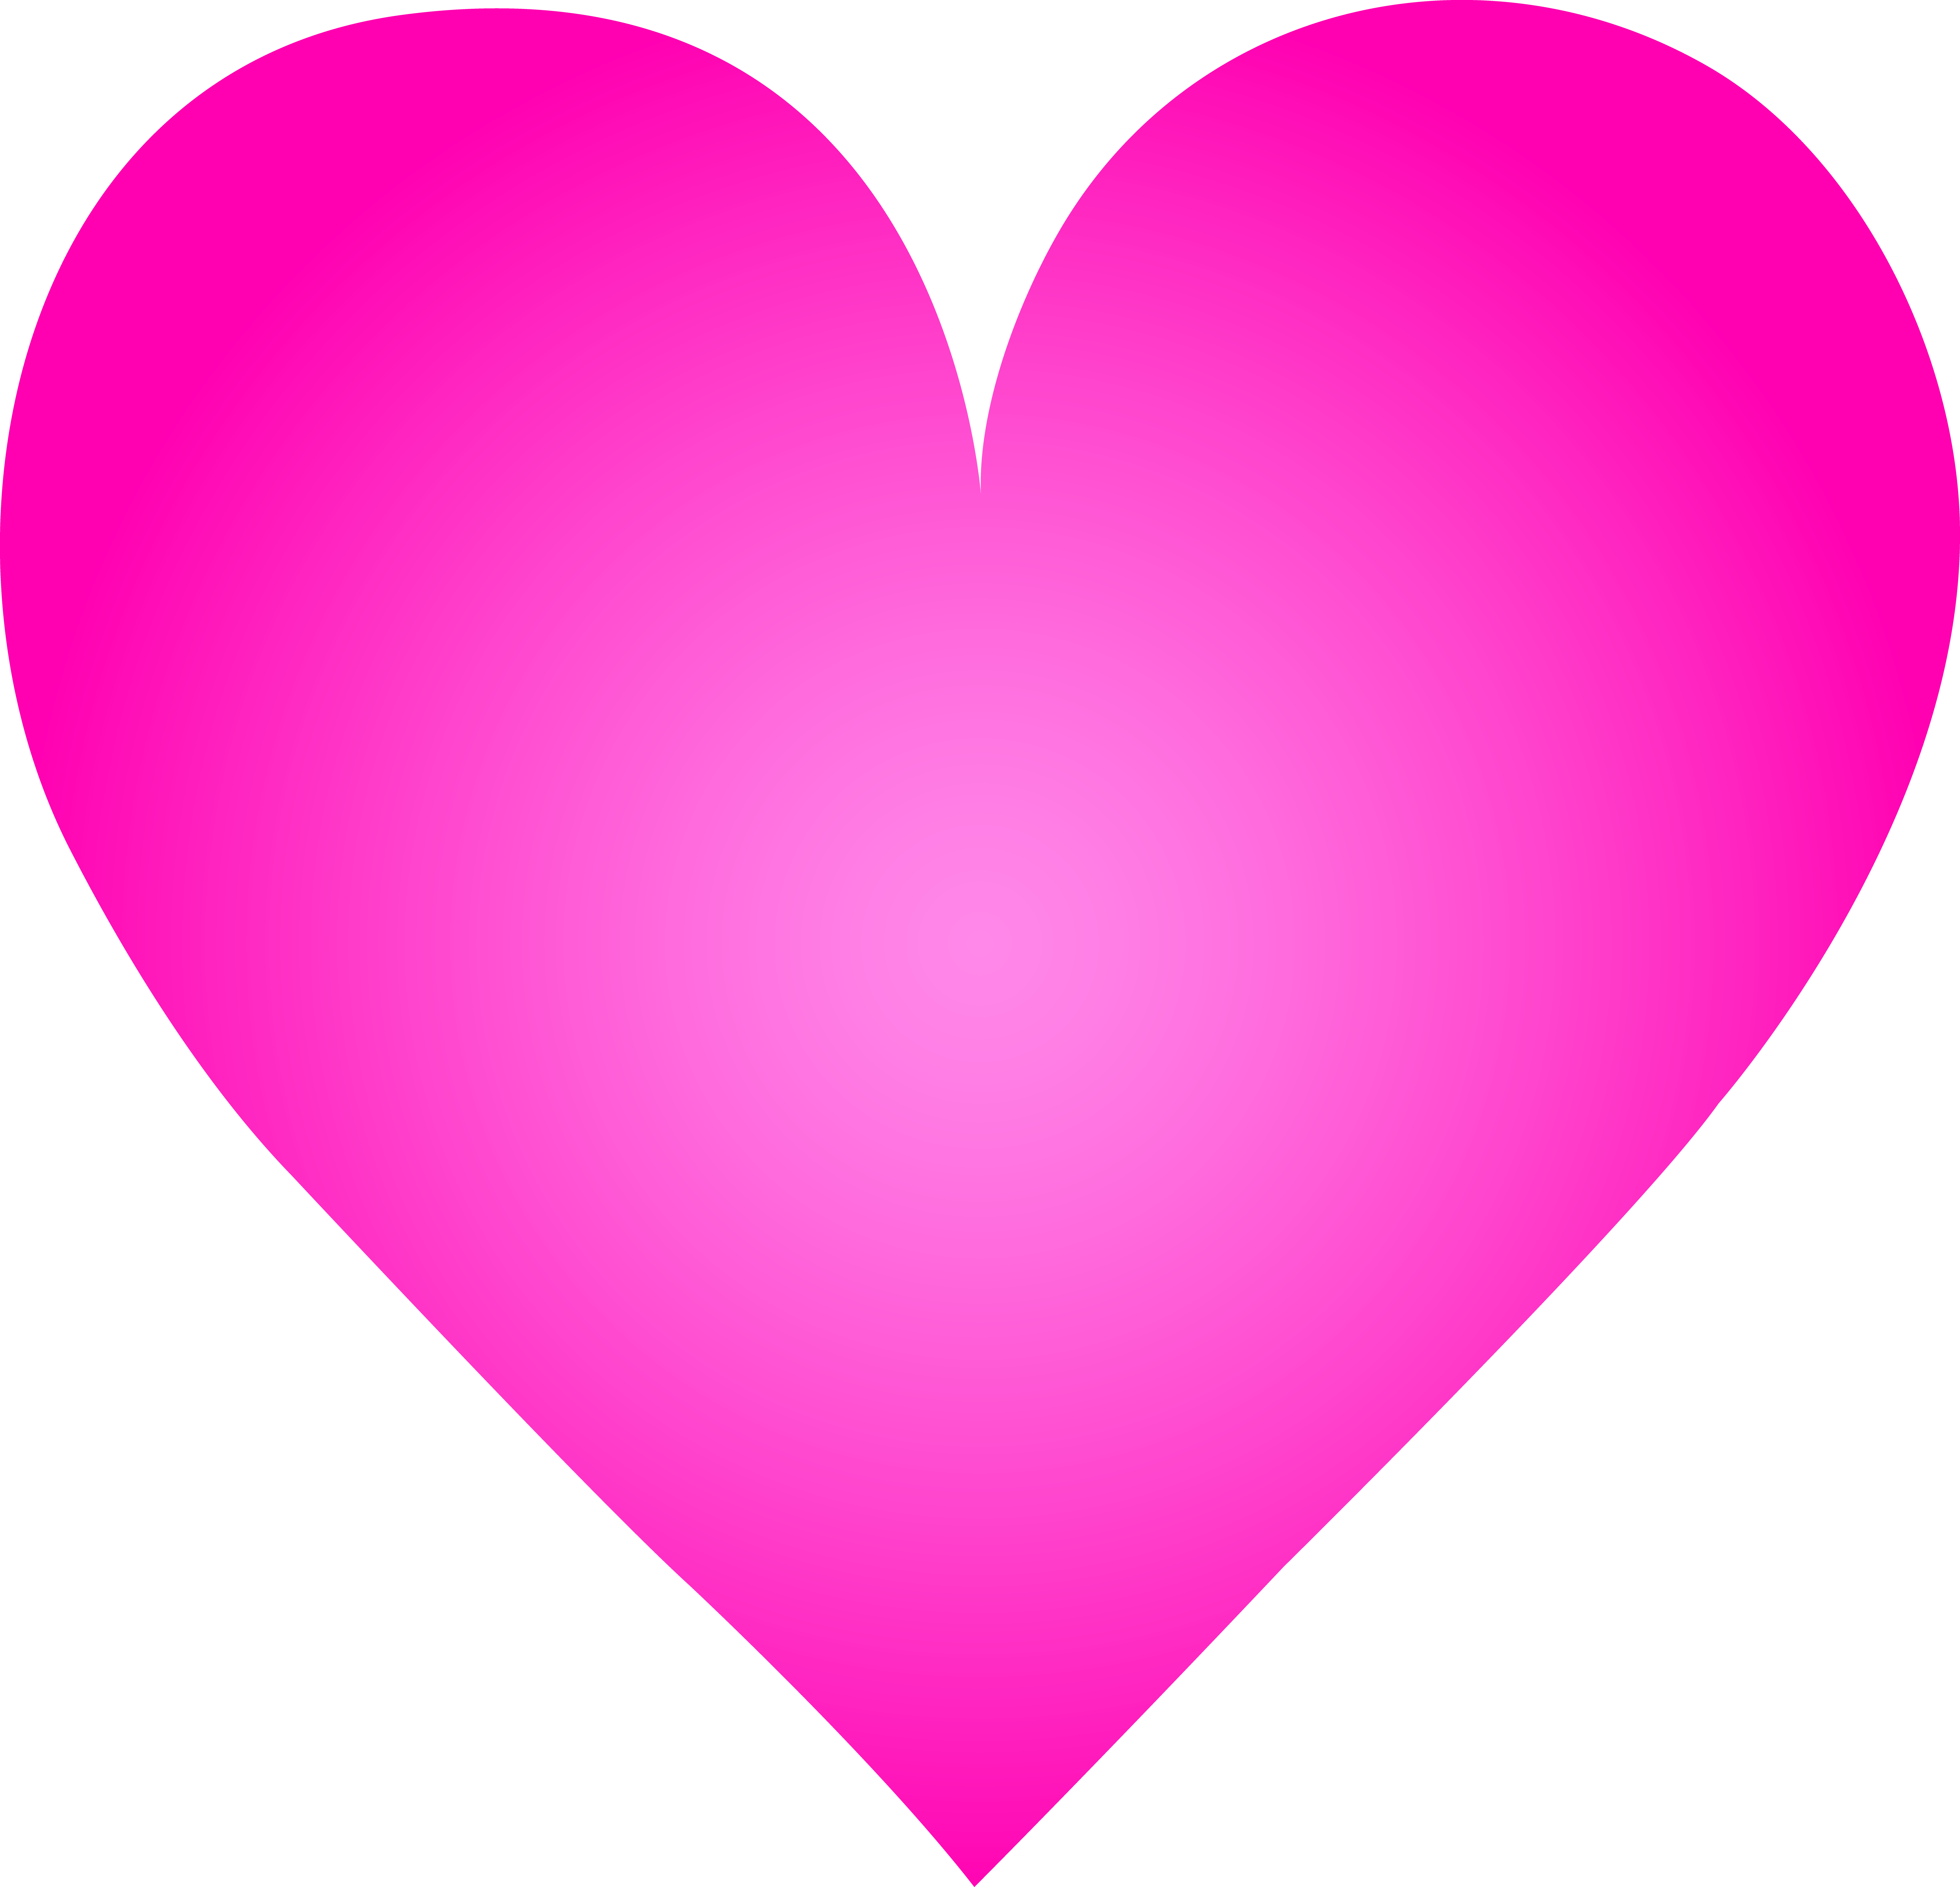 8 Pink Heart Icon Images